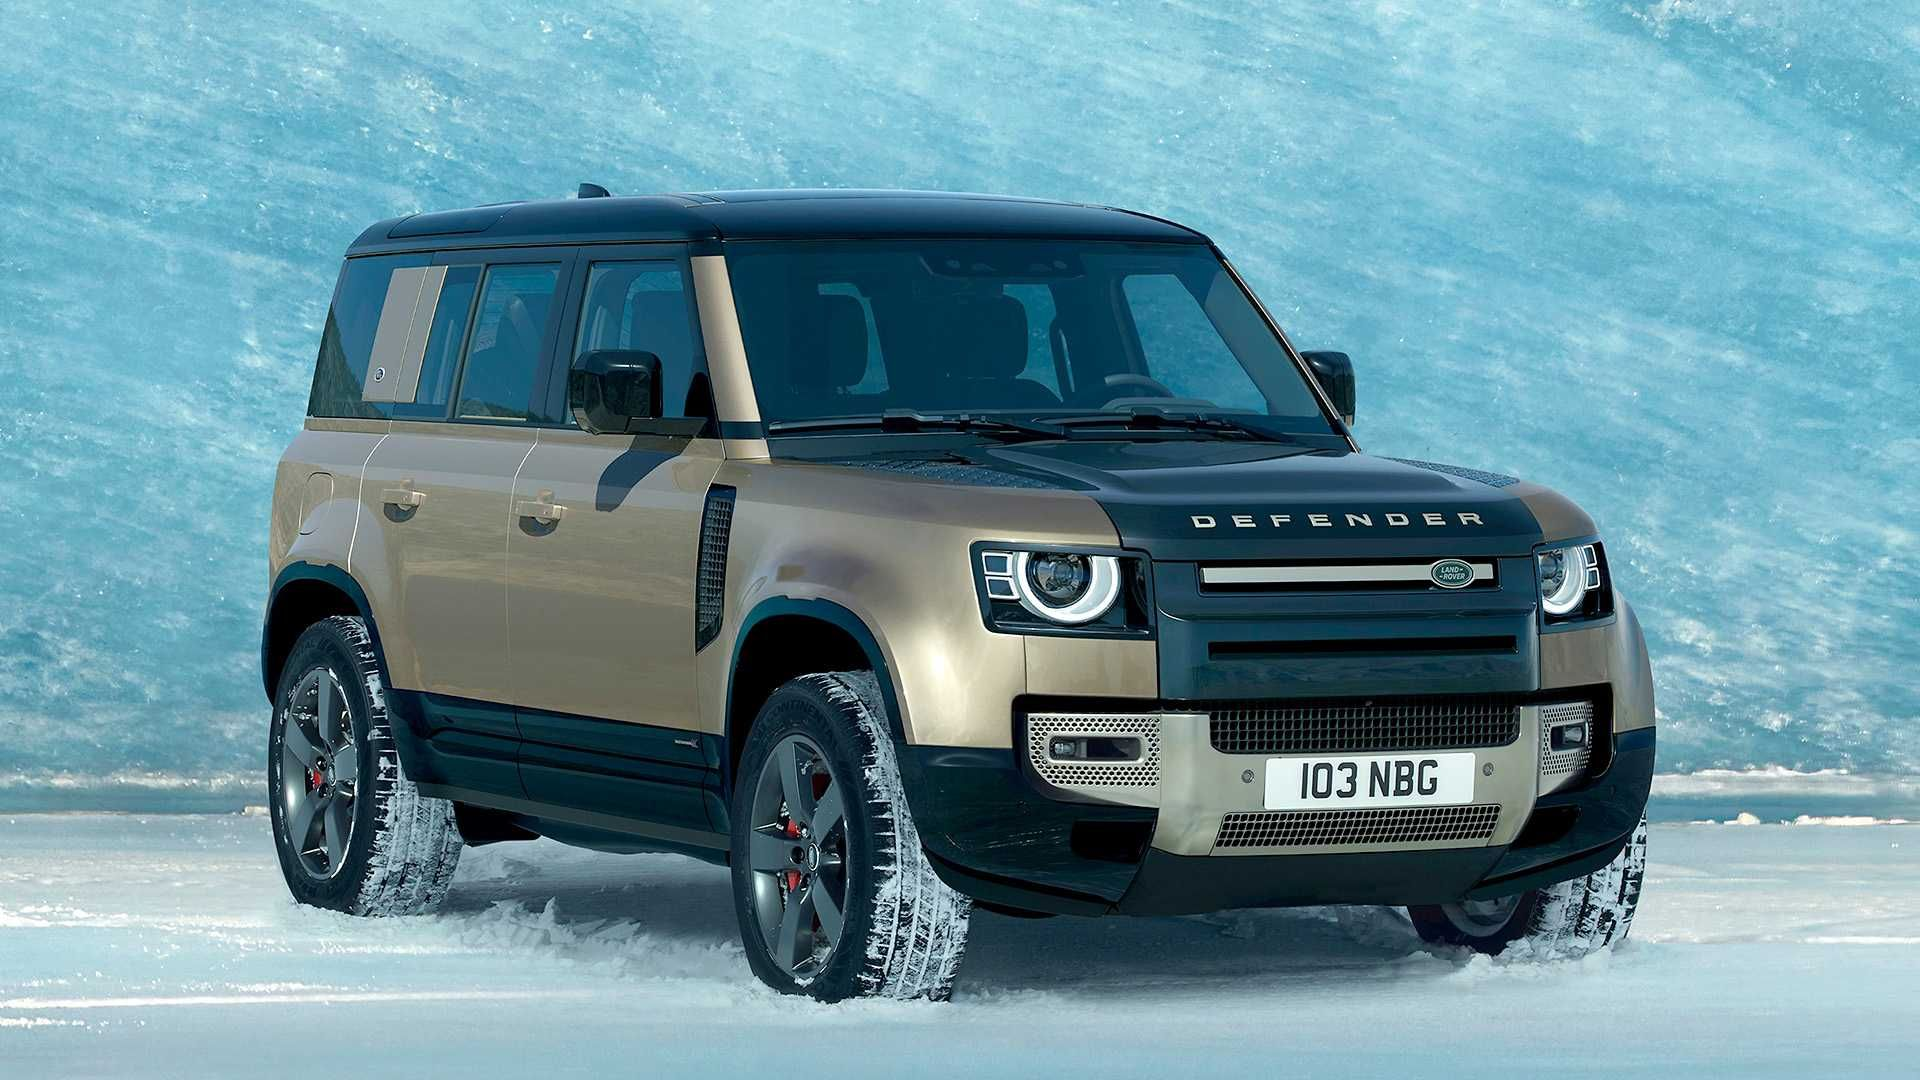 Nissan Micra March Facelift Revealed In Official Photos In 2020 Land Rover Defender Land Rover